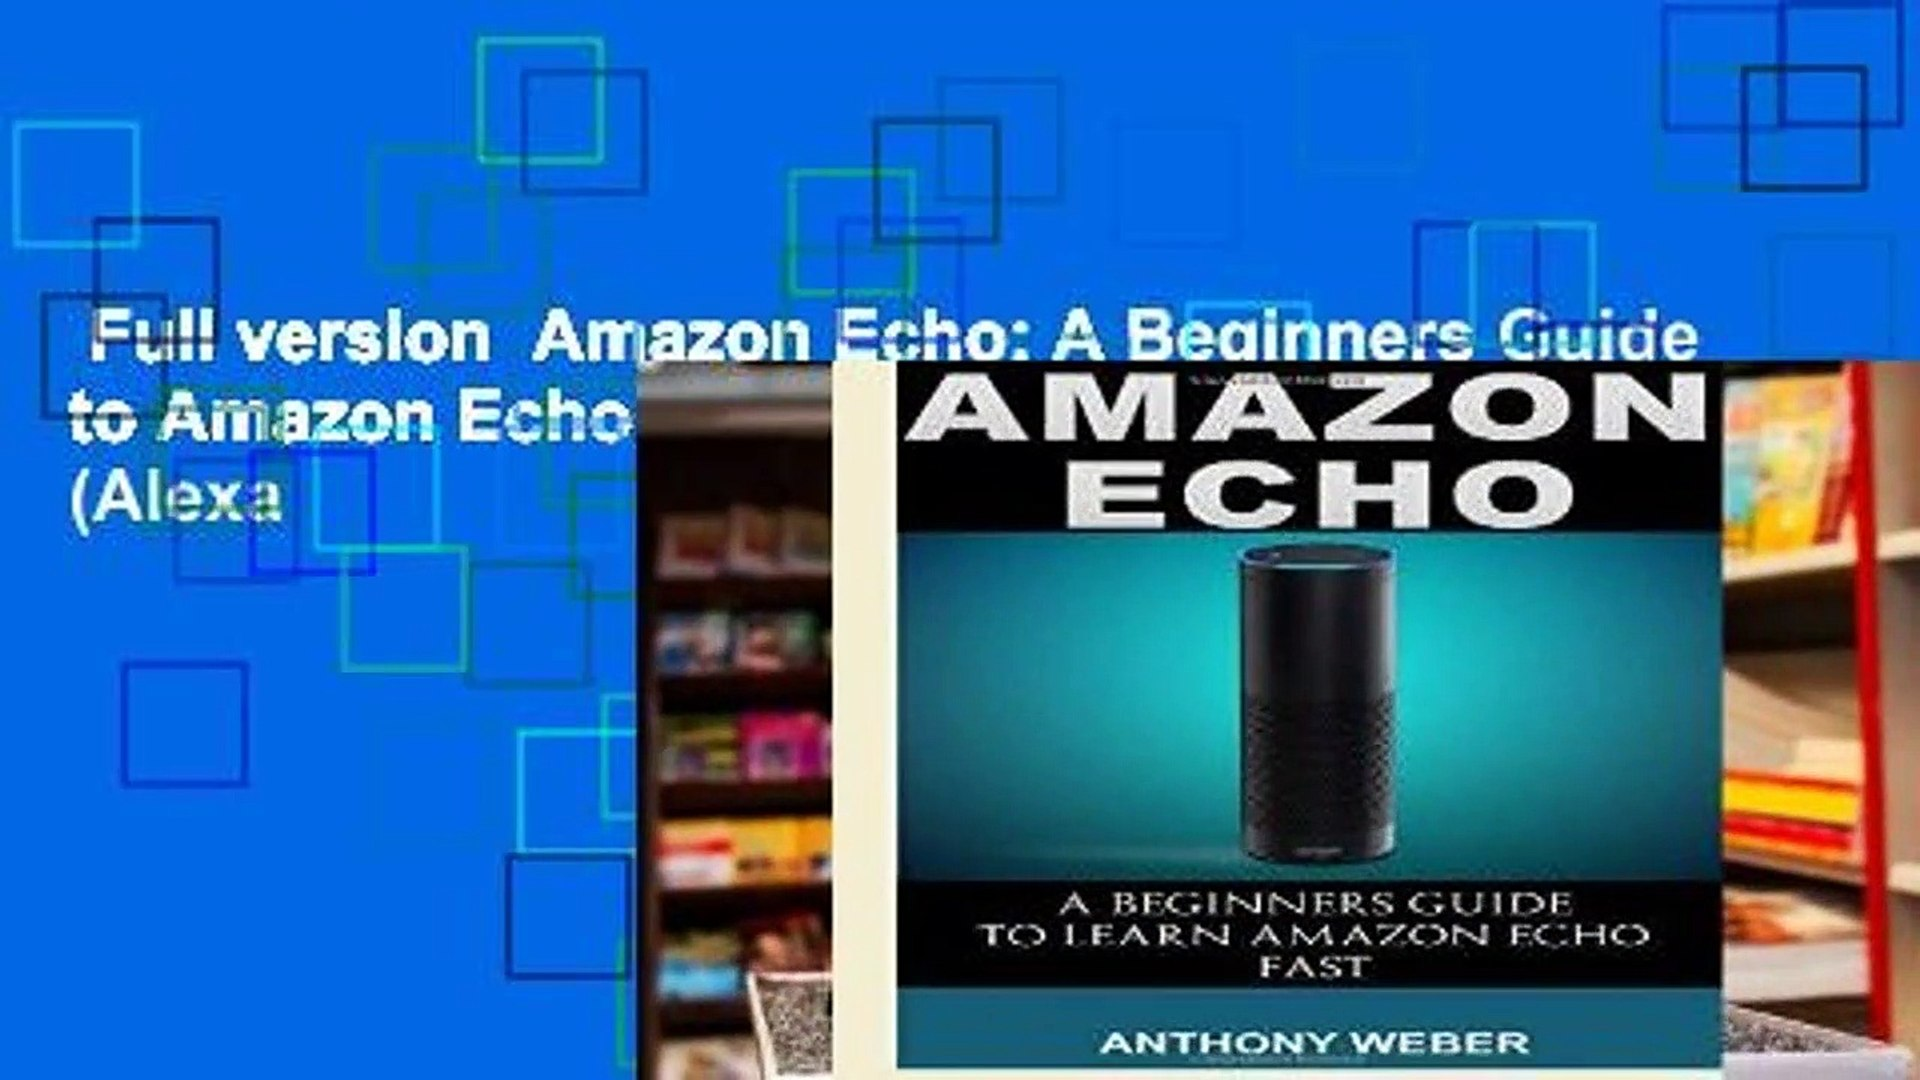 Full version  Amazon Echo: A Beginners Guide to Amazon Echo and Amazon Prime Membership (Alexa